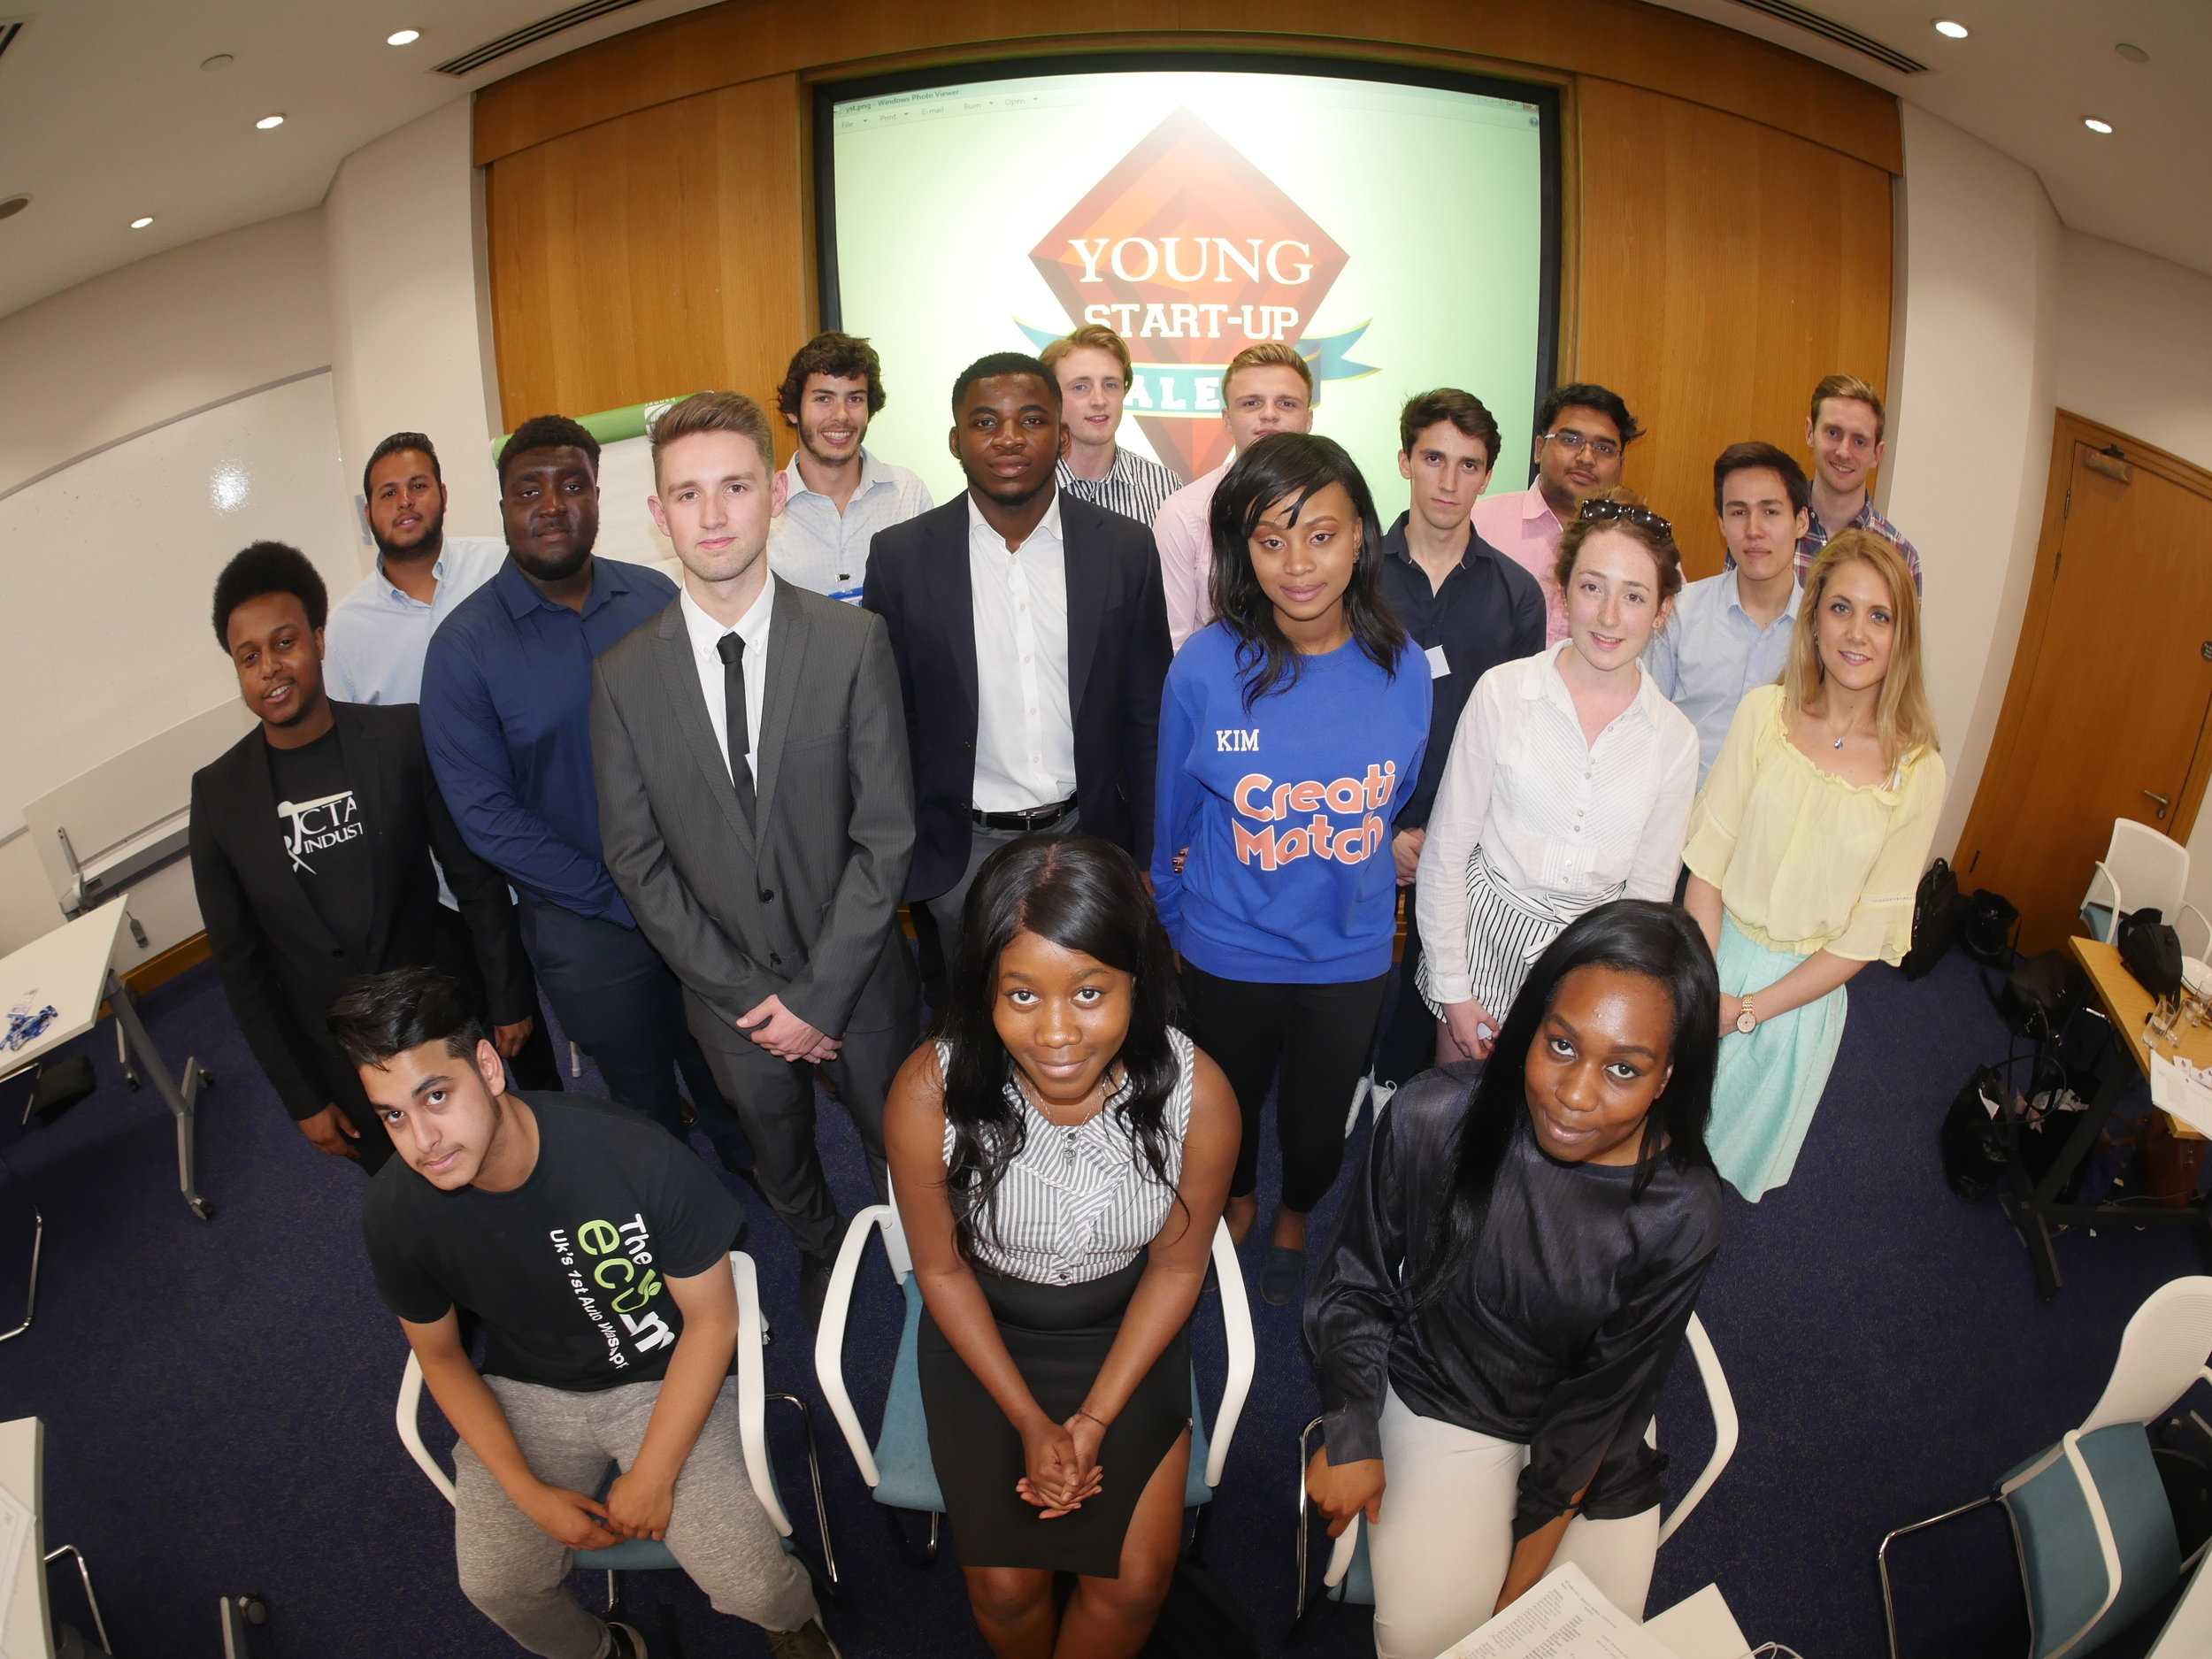 YST London semi finalists at the speednetworking event - NatWest offices in Bank